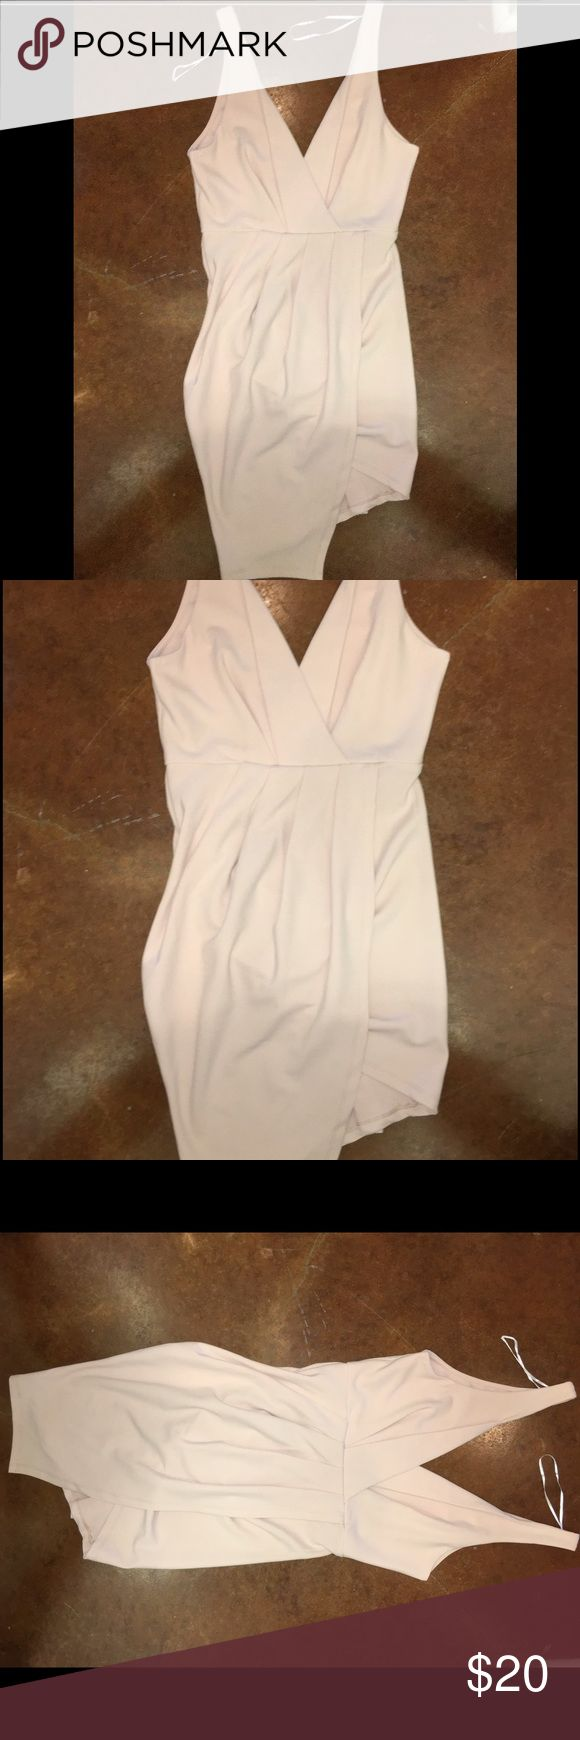 Nude Australian dress never worn size small (AUS8) Australian boutique dress in small (size 8 in AUS) in nude never worn new with tags! ardlie Dresses Asymmetrical